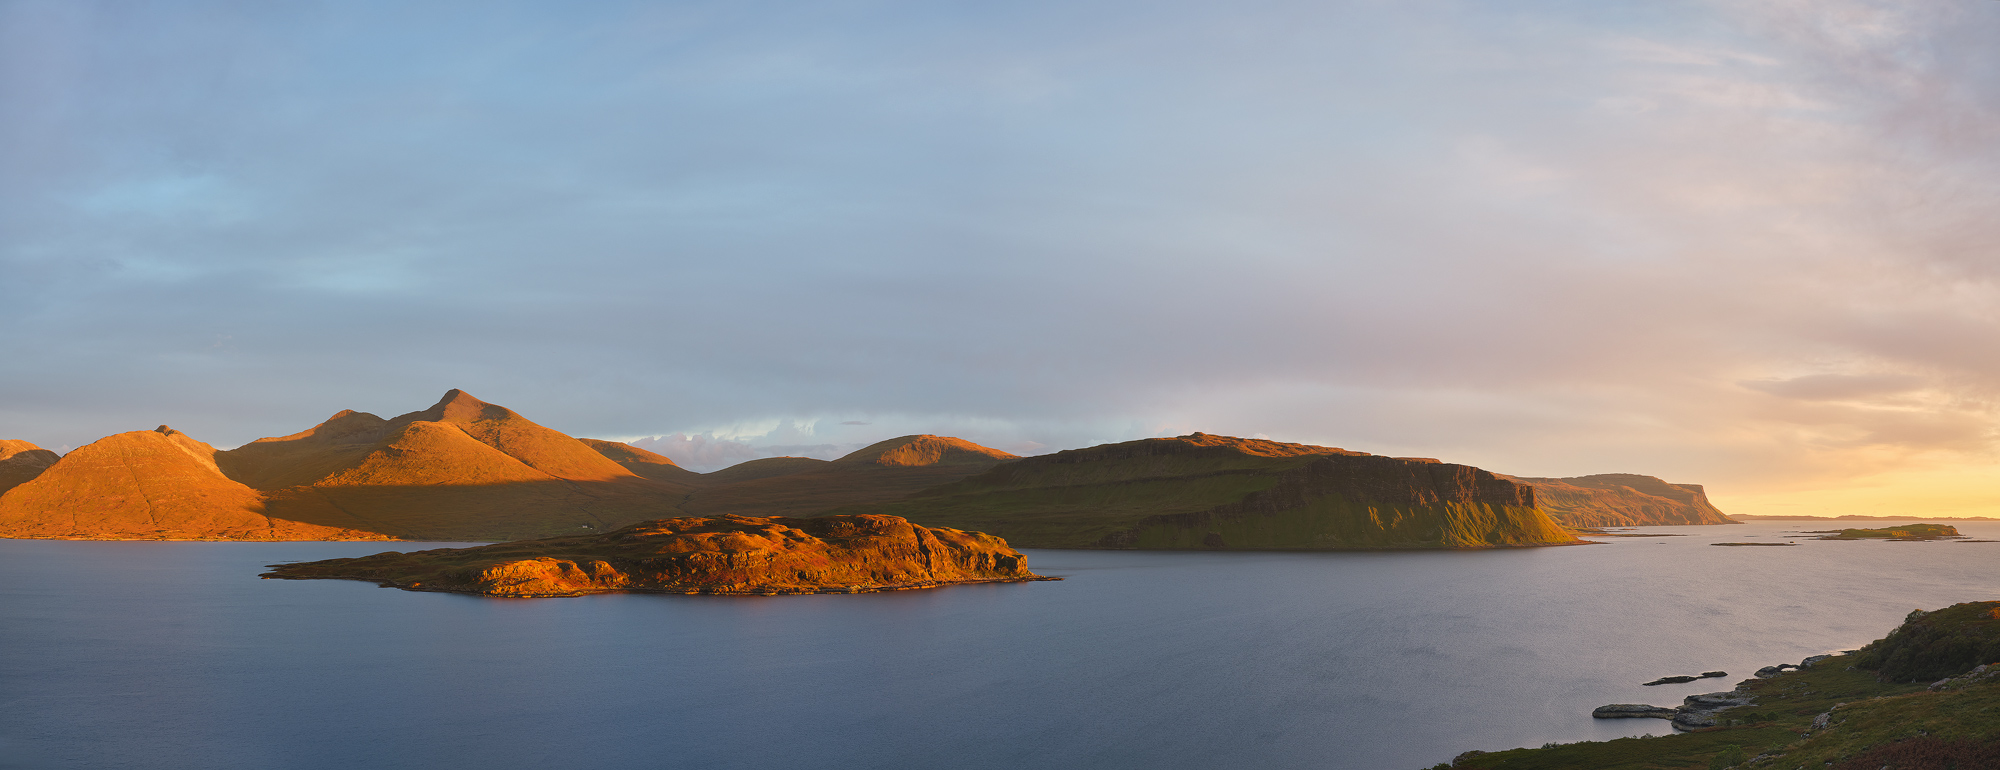 Sunset Panorama, Gribun, Loch Na Keal, Mull, Scotland, autumnal, evening, ginger, deer grass, clouds, horizon, cliffs, photo